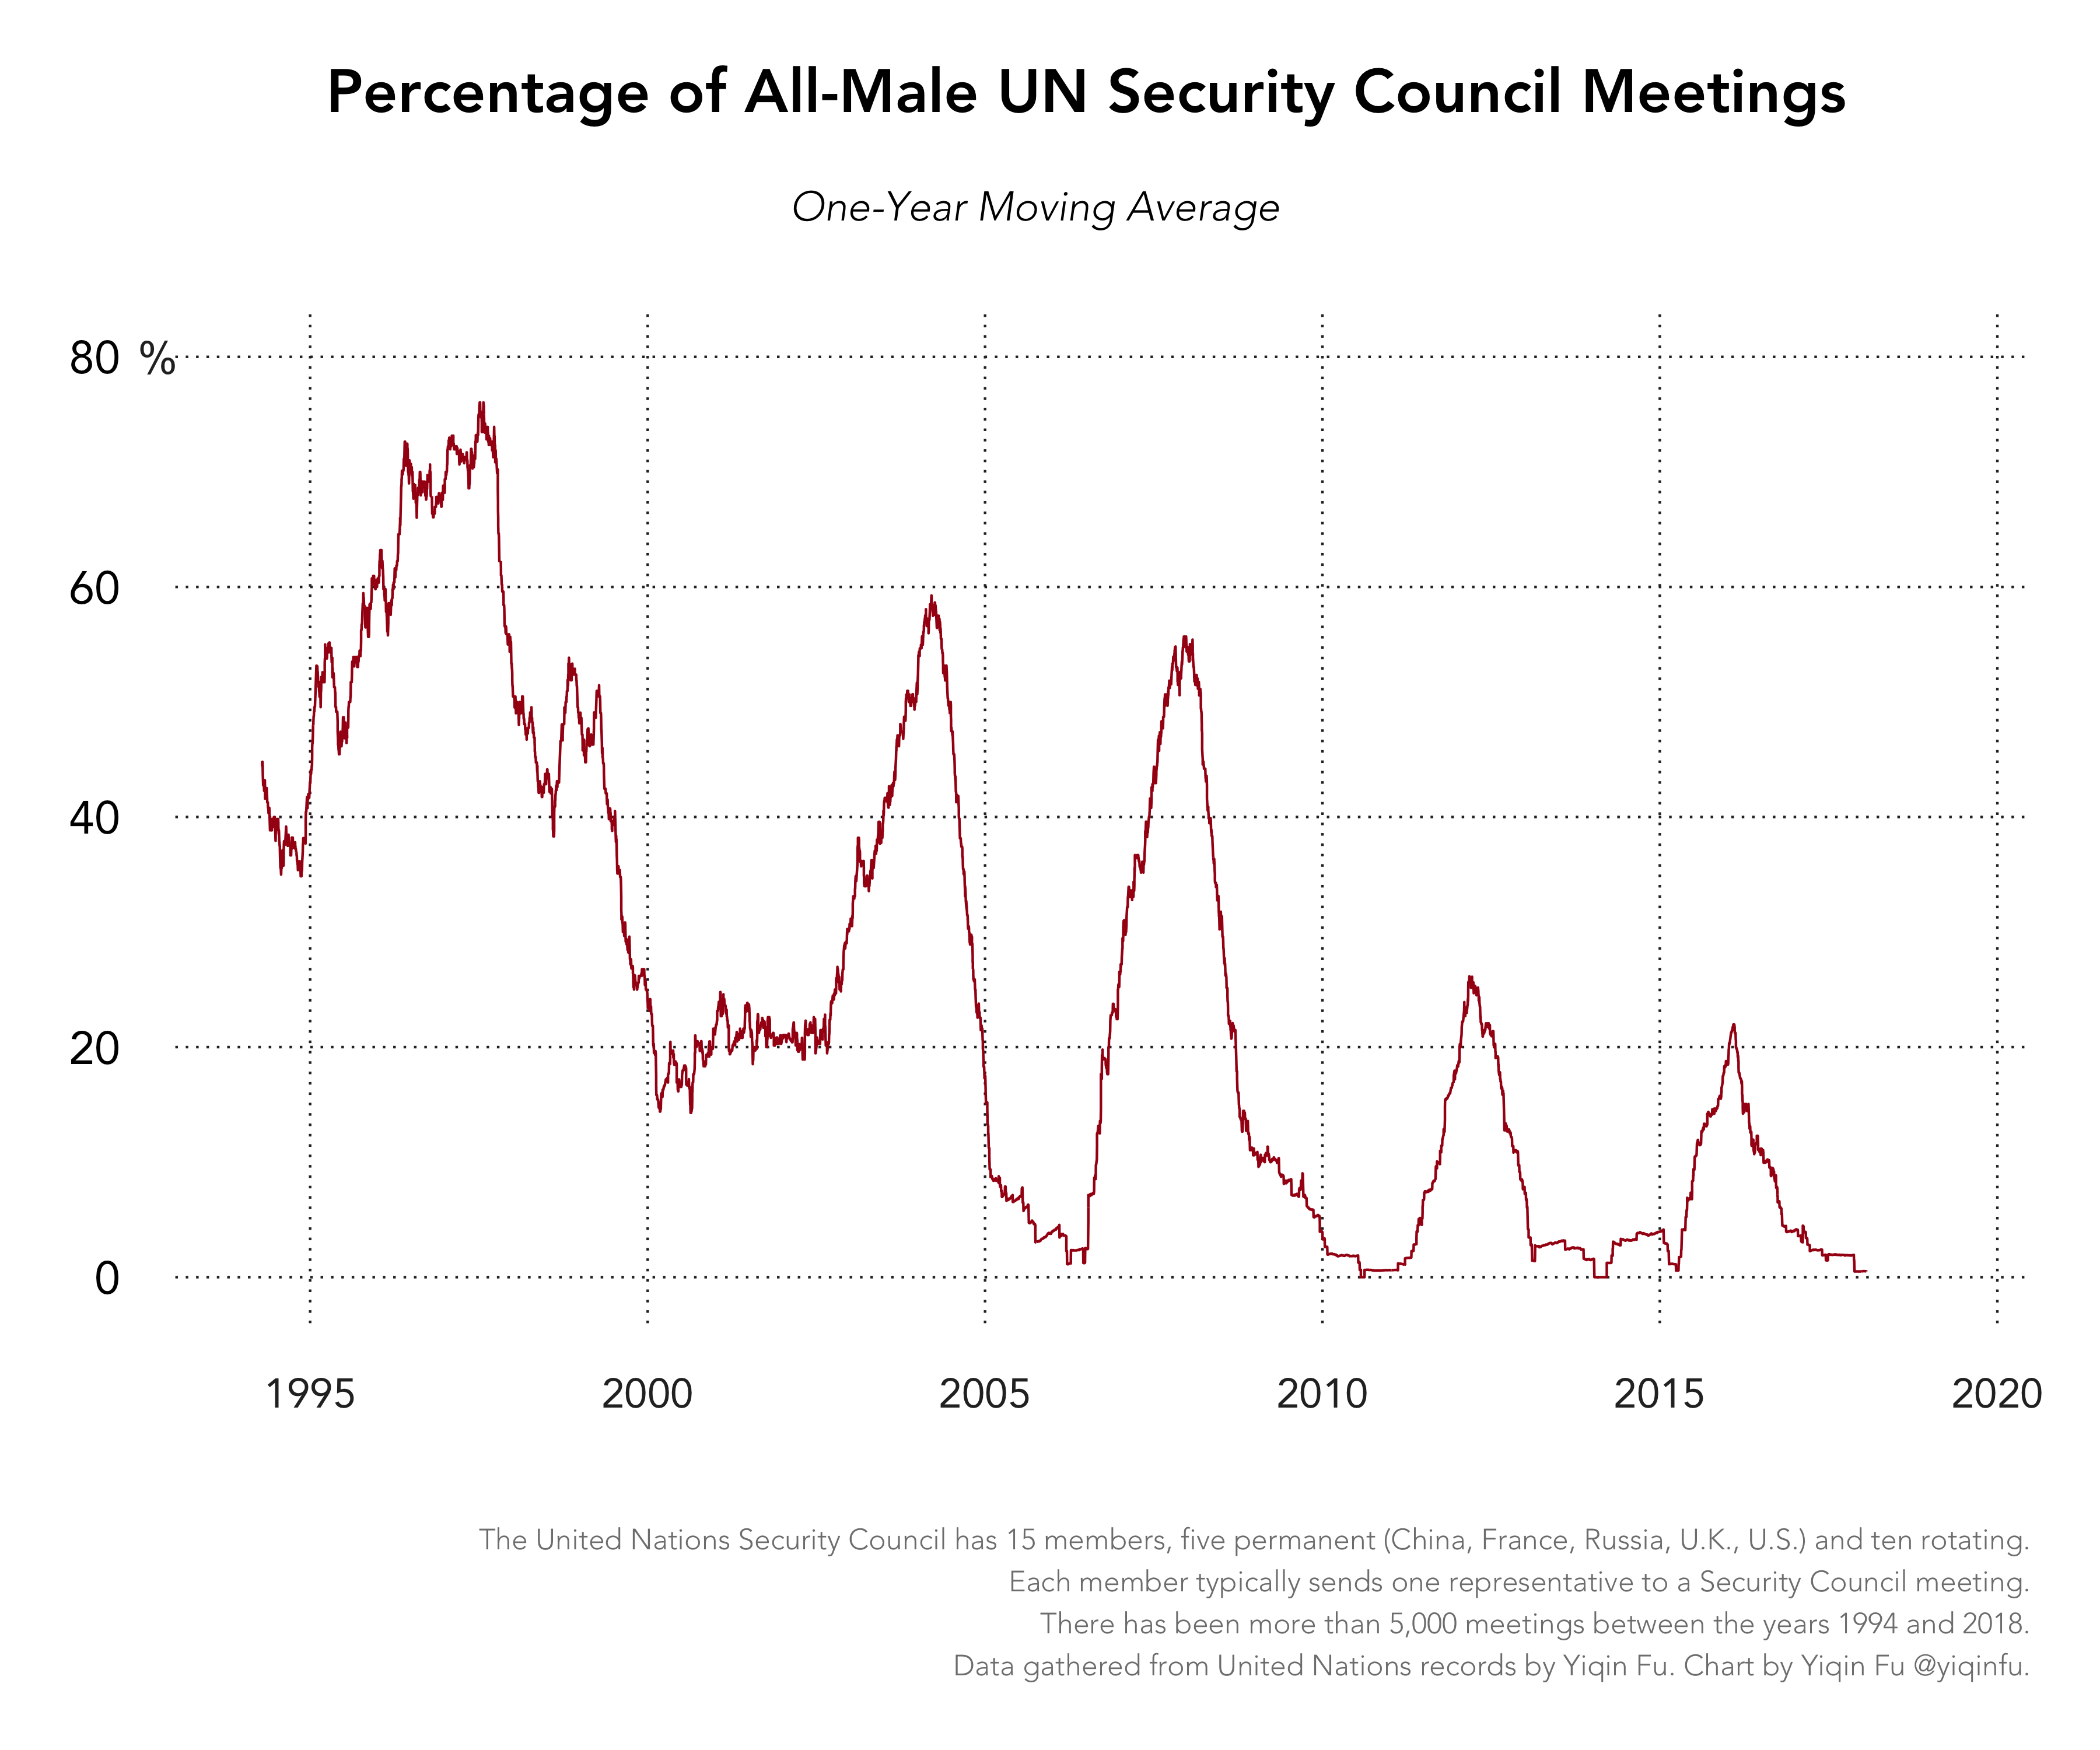 women-unsc-appearance-all-male-meetings